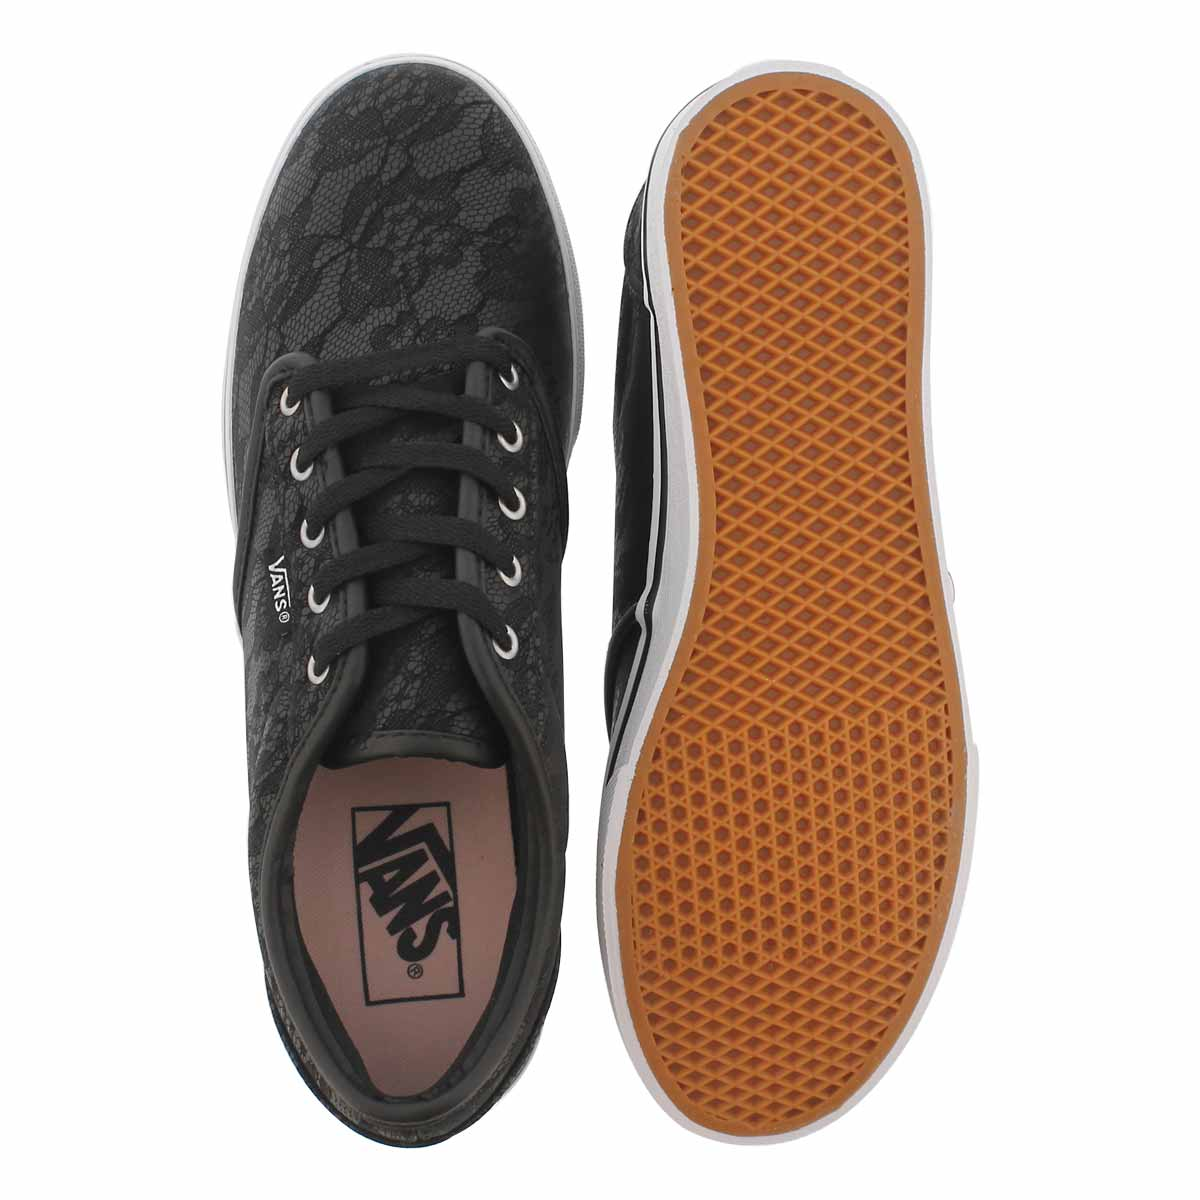 Lds Atwood Low blk lace laceup snkr